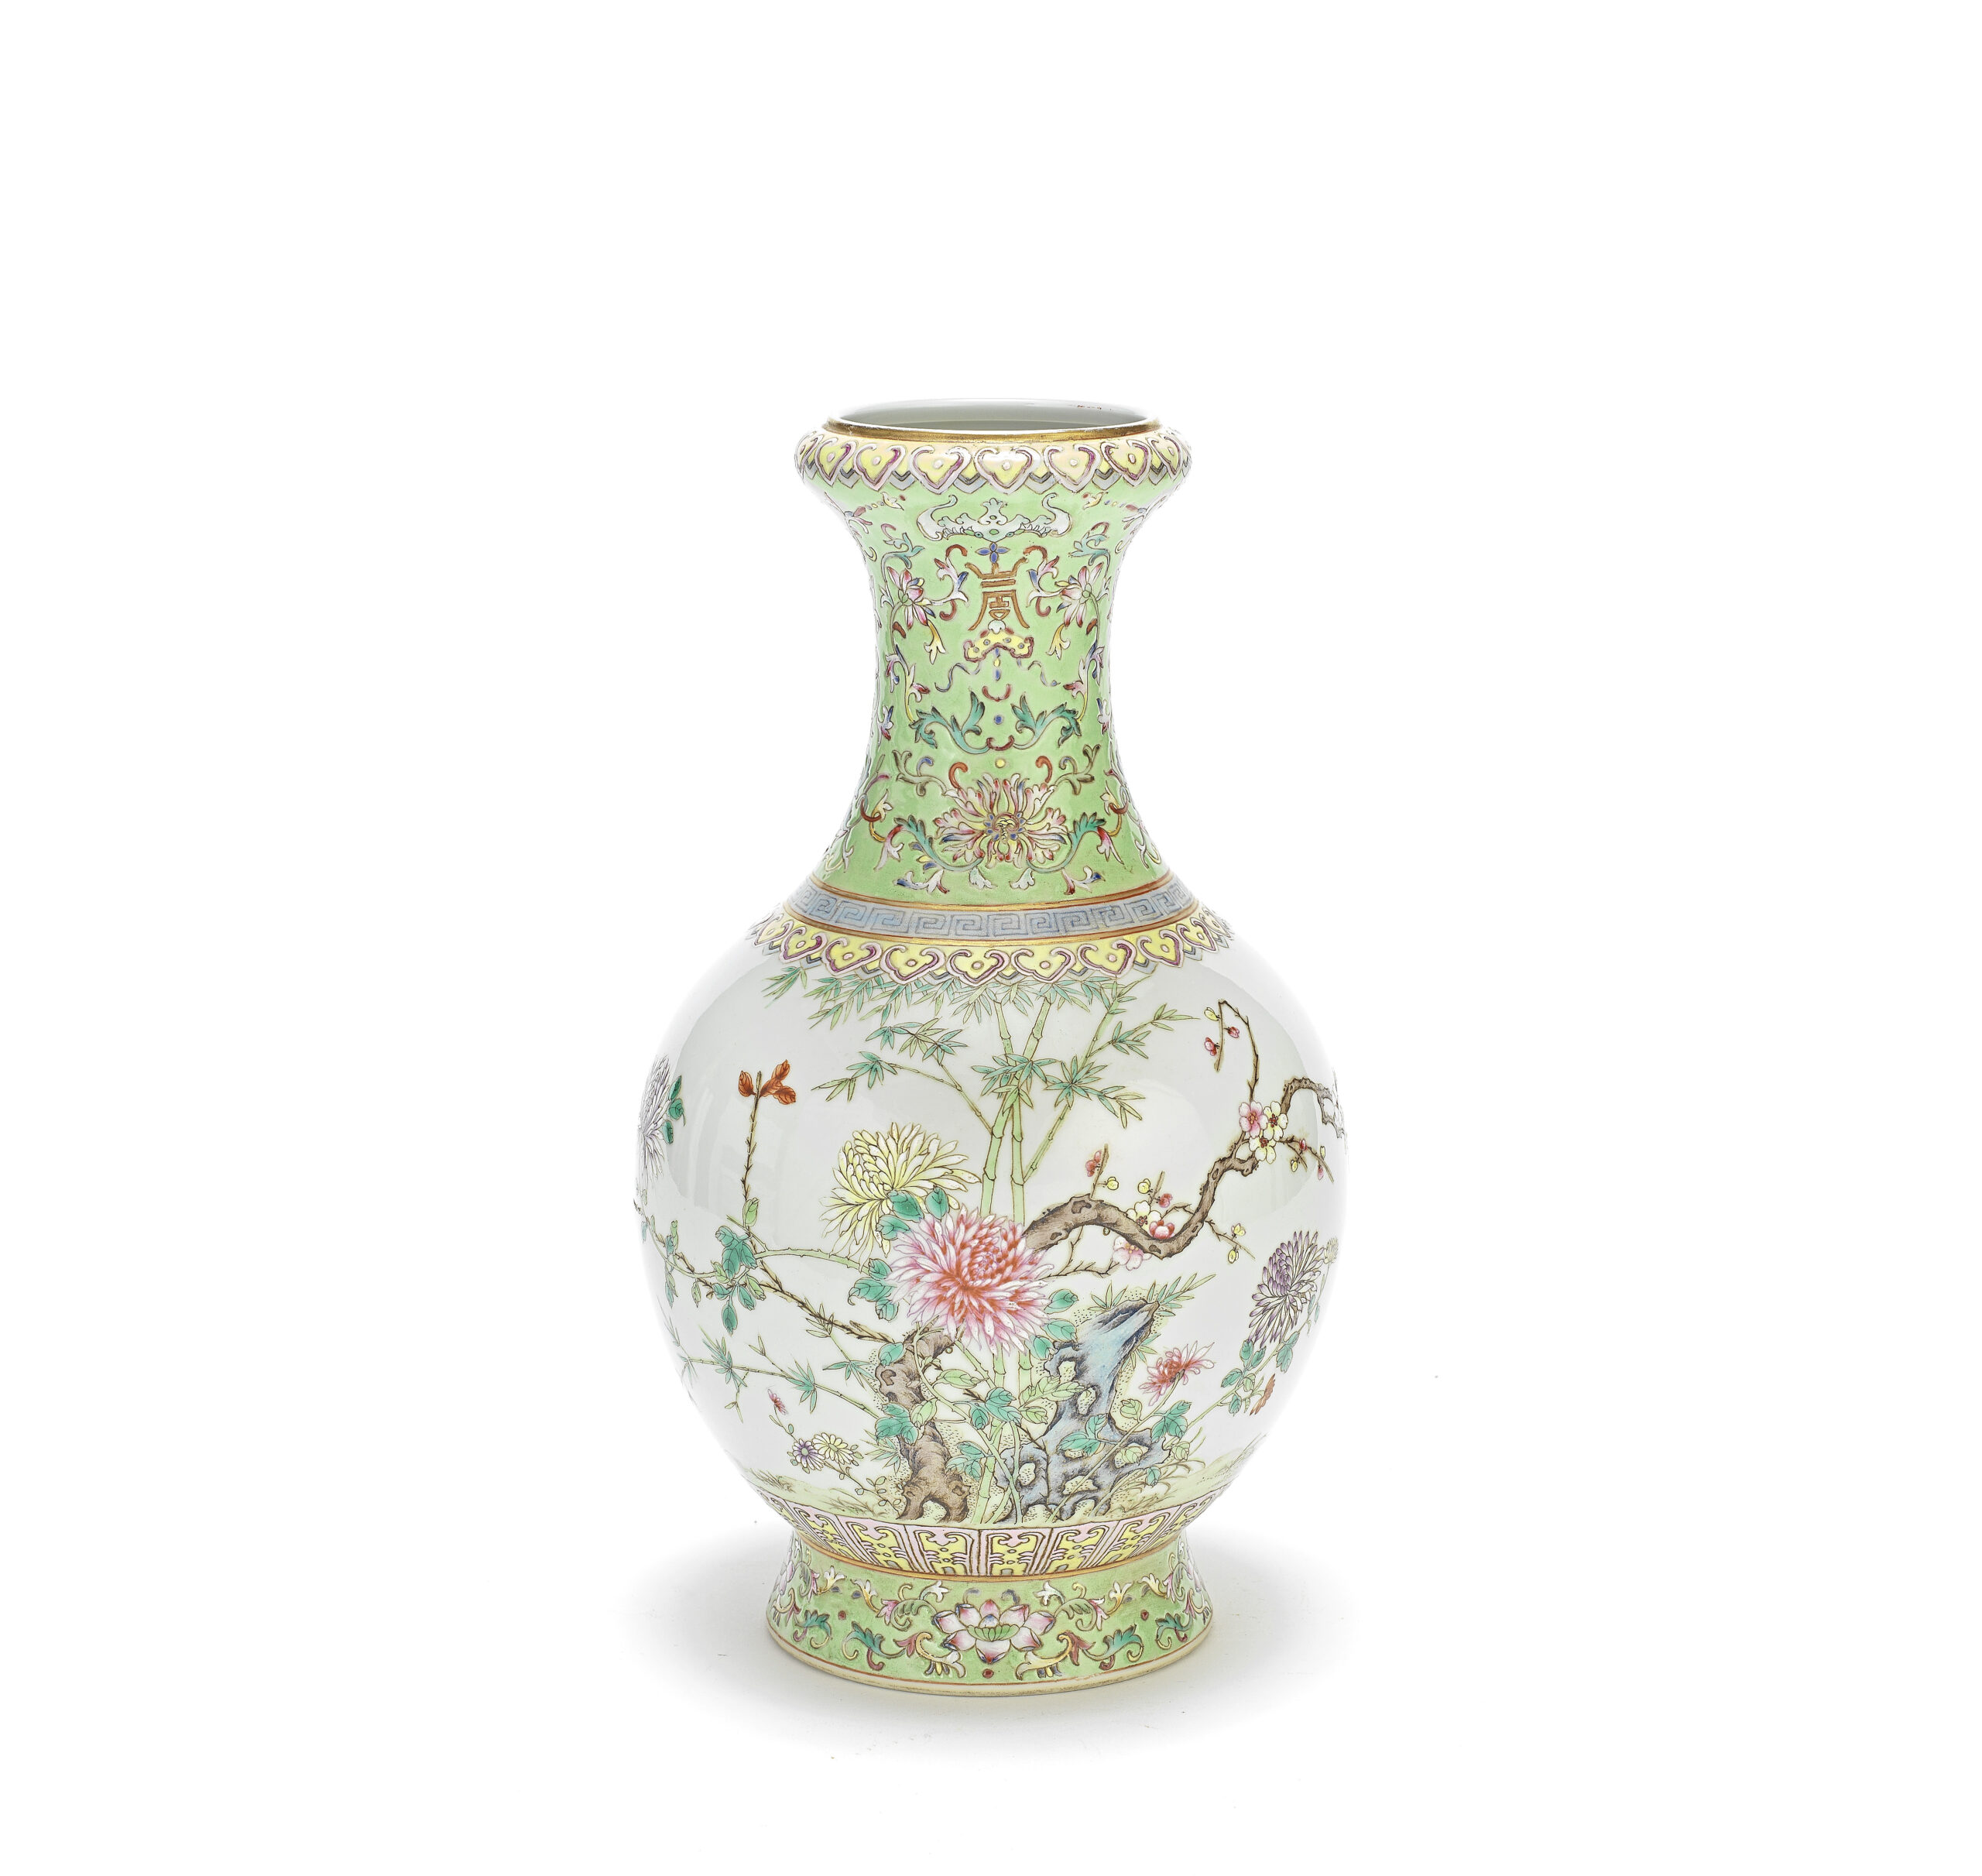 A FAMILLE ROSE BALUSTER VASE, Qianlong seal mark, Republic Period, 29cm (11 3/8in) high